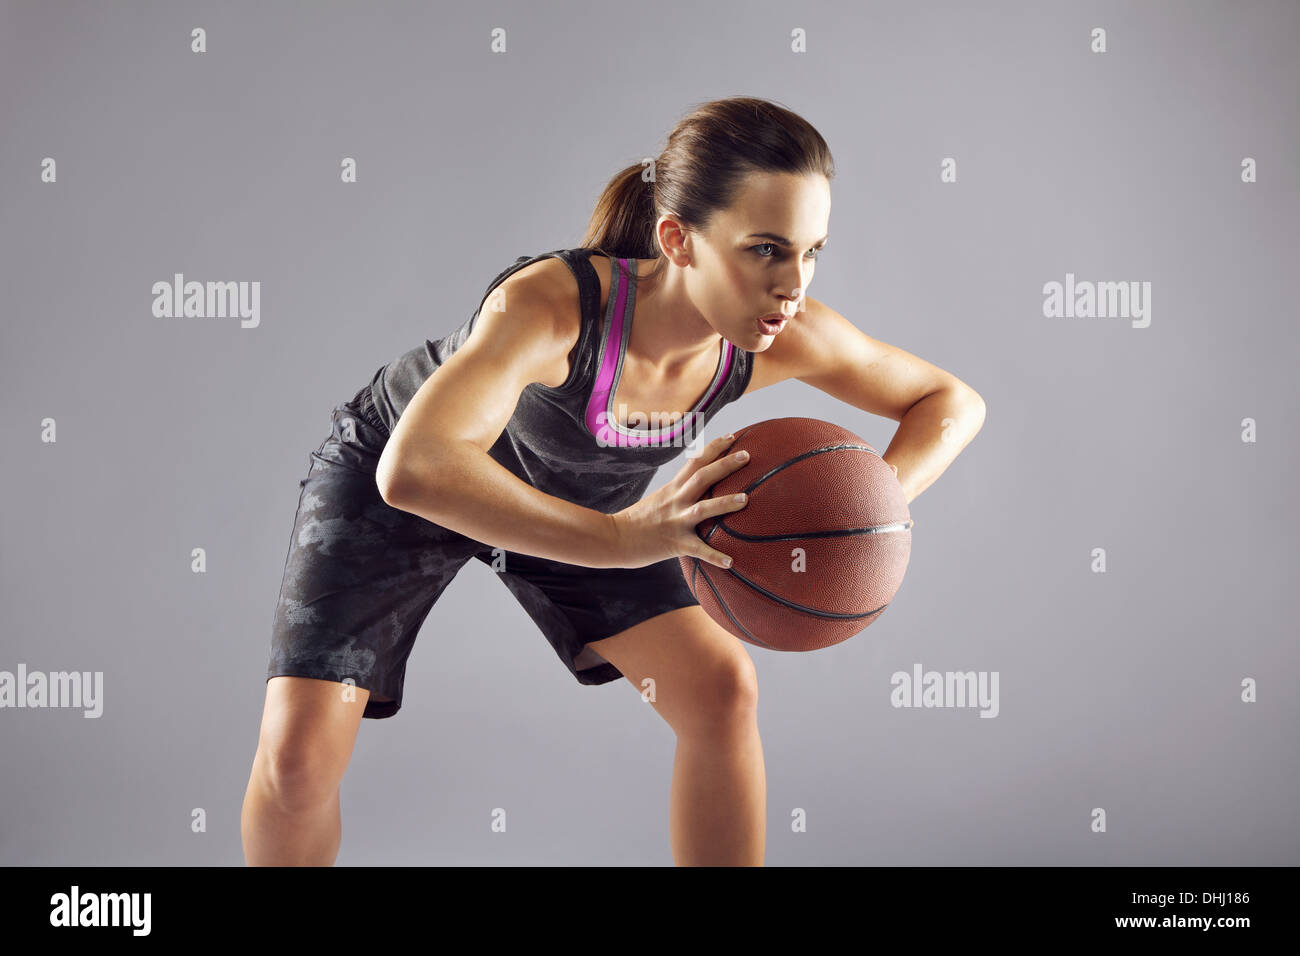 Young female basketball player in uniform passing a basketball. Woman in sportswear playing basketball and looking away on grey - Stock Image